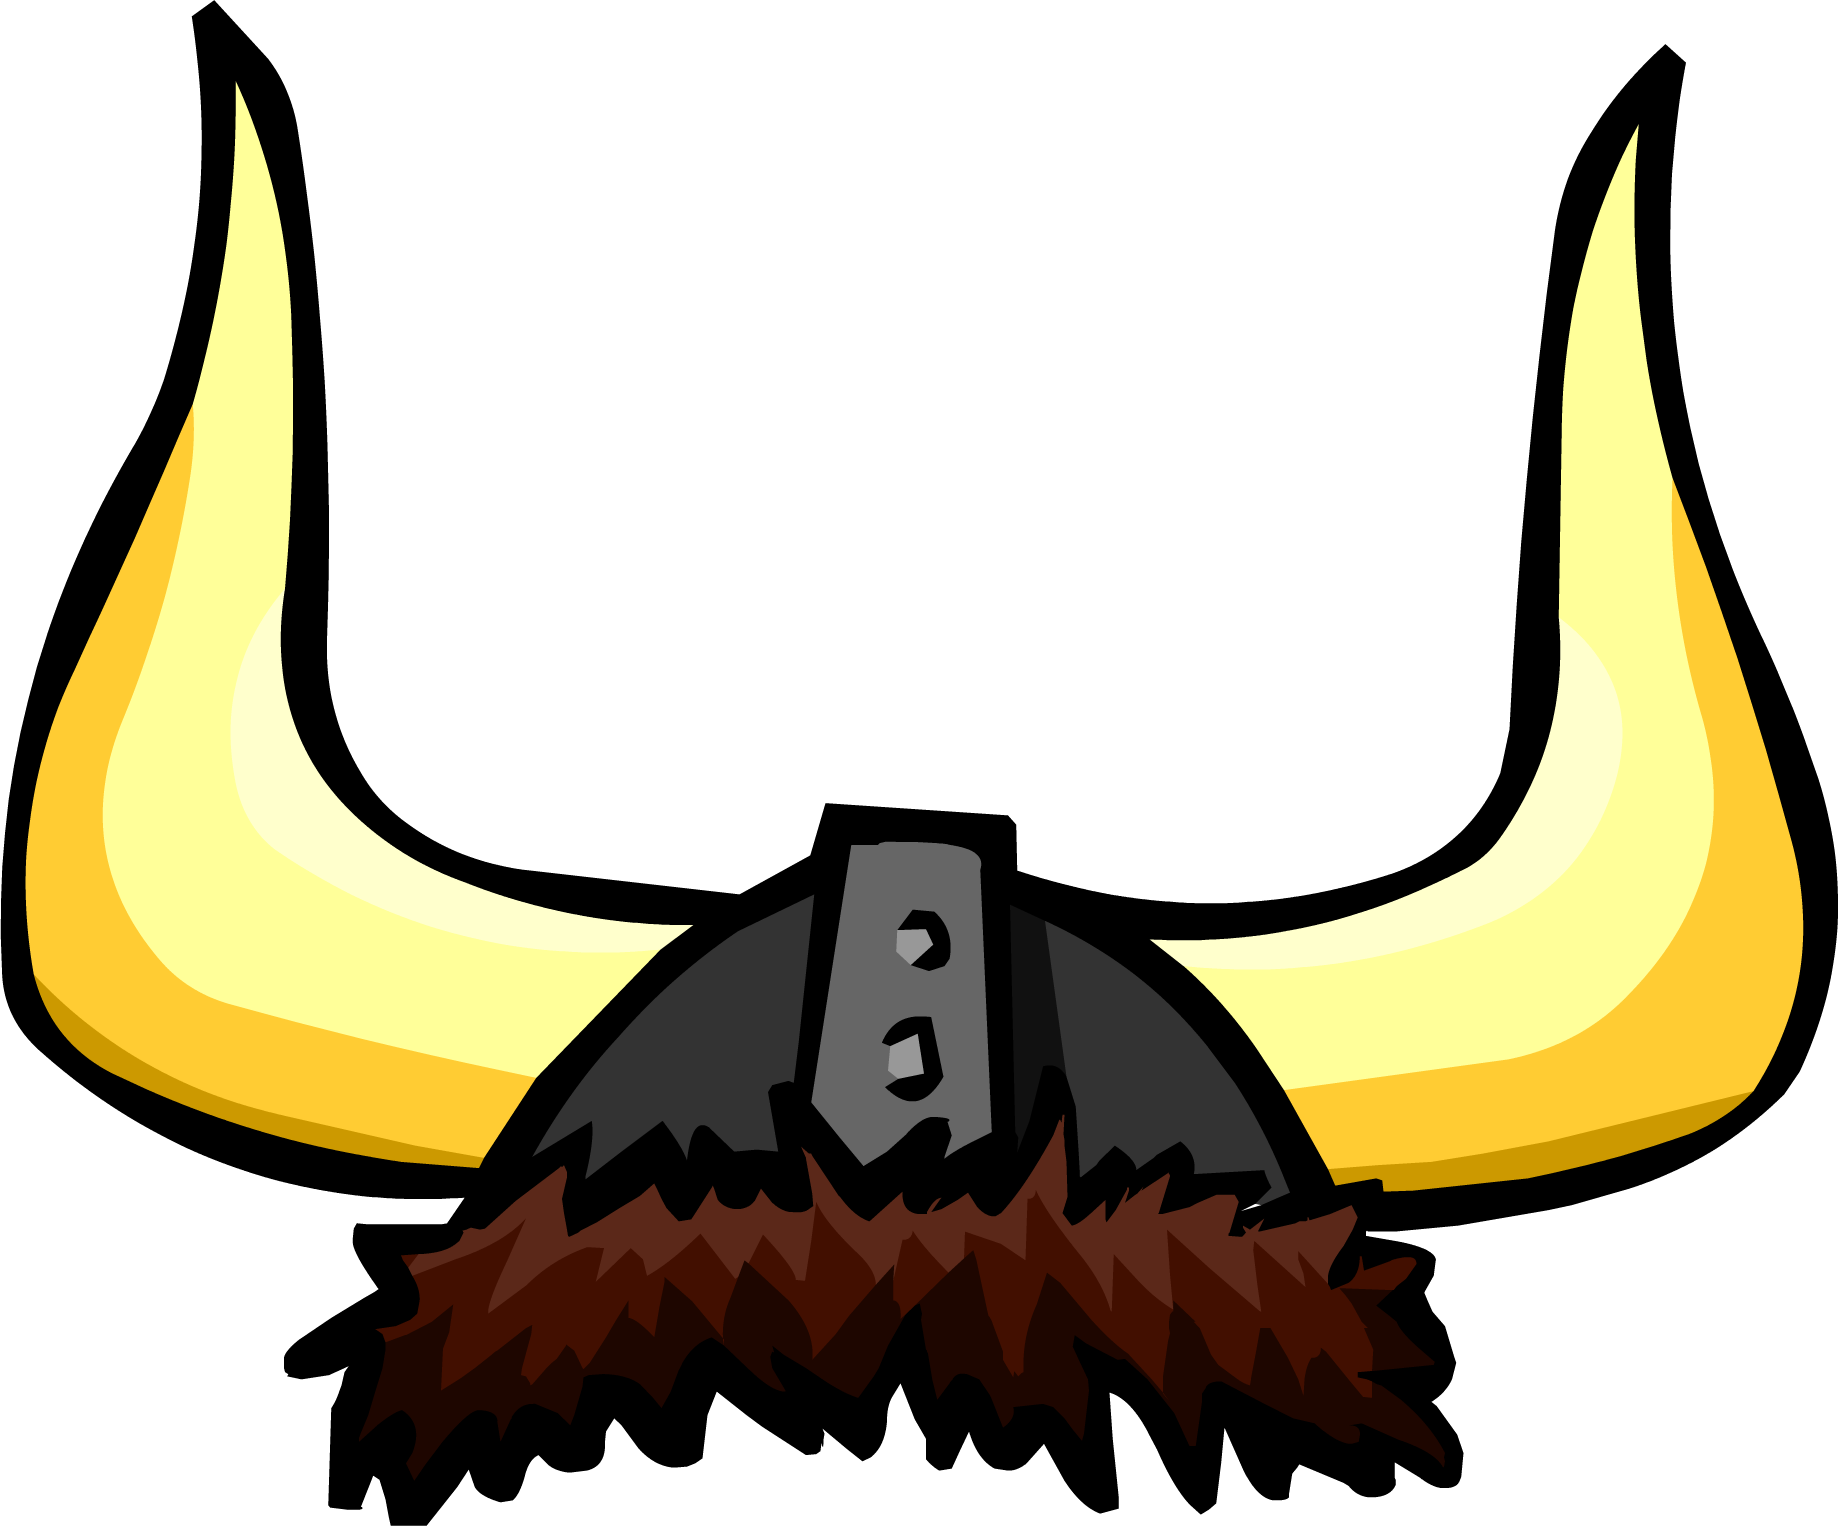 Clipart shield viking. Png recherche google dragones